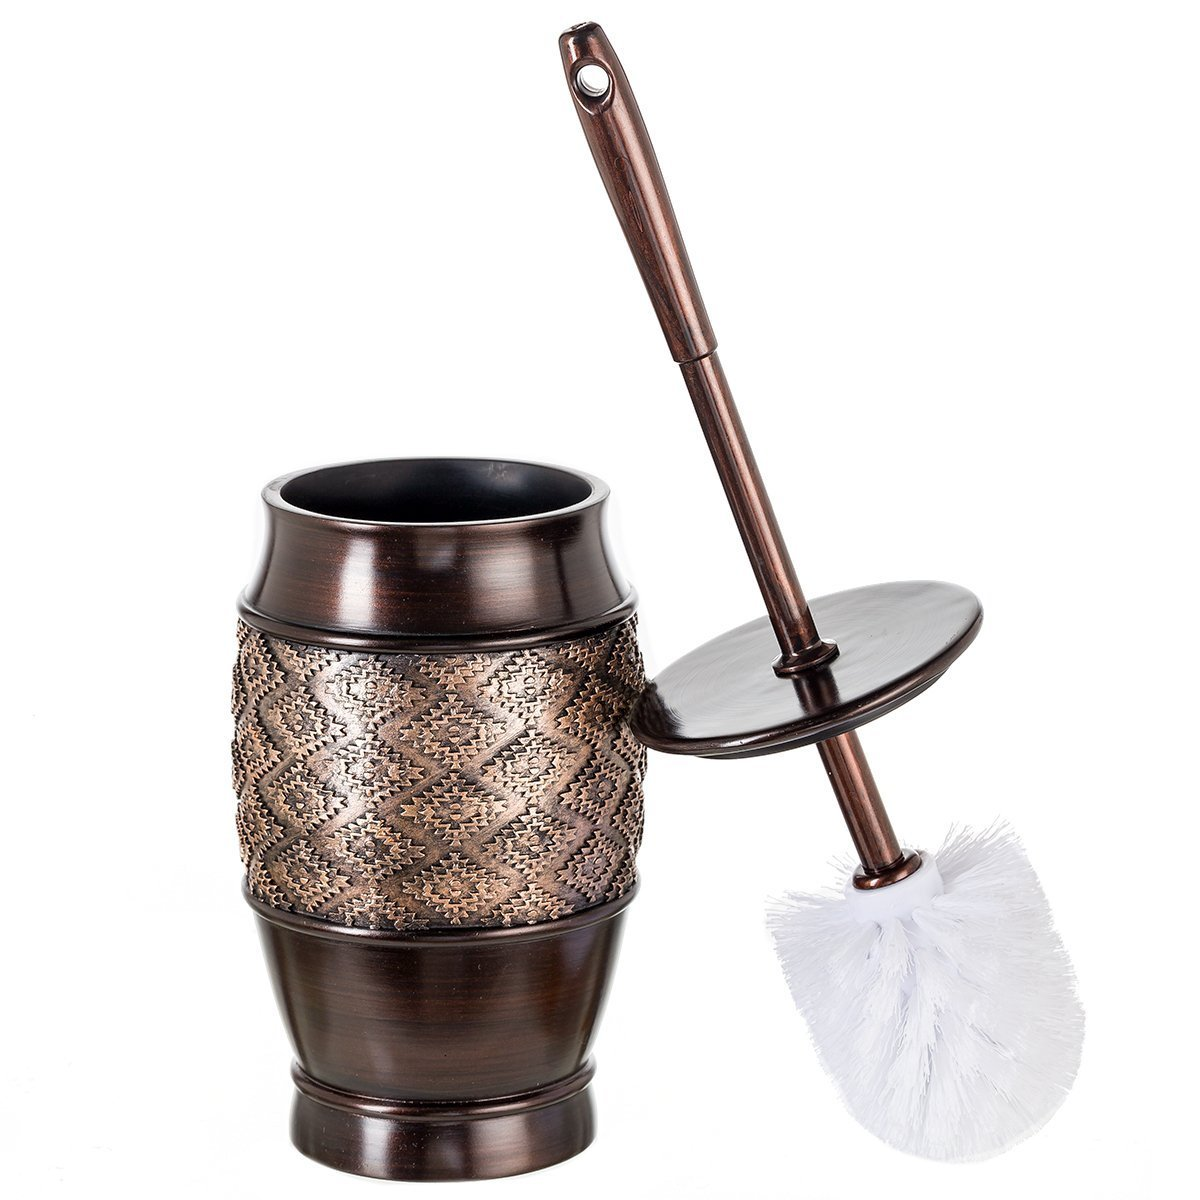 Dublin 6-Piece Bathroom Accessories Set, Includes Decorative Countertop Soap Dispenser, Soap Dish, Tumbler, Toothbrush Holder, Tissue Box Cover and Toilet Bowl Brush (Brown) by Creative Scents (Image #5)